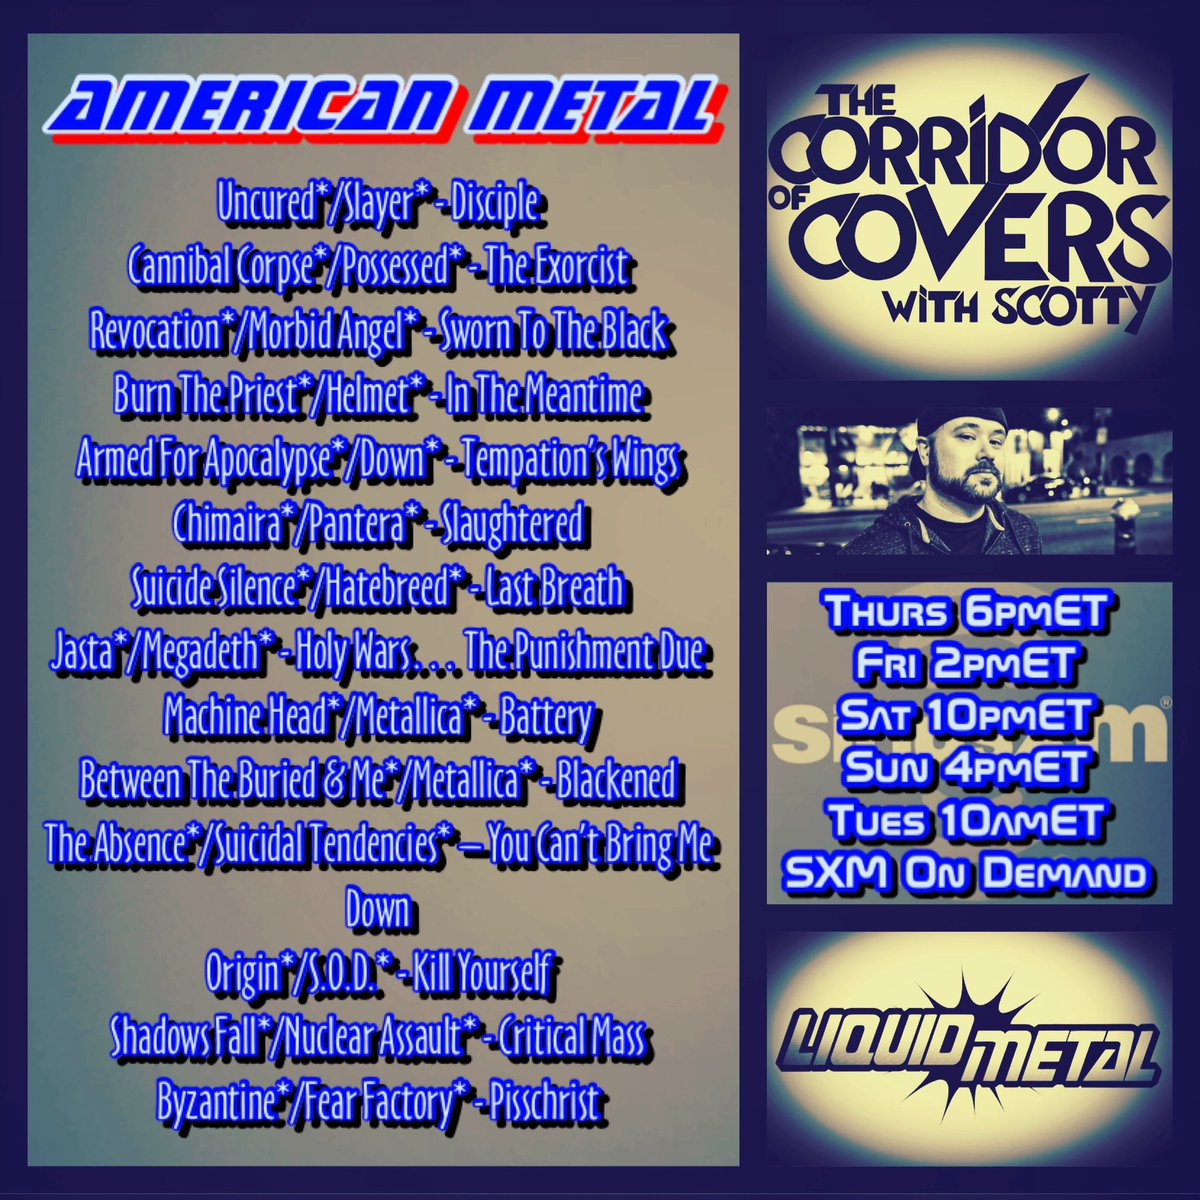 #corridorofcovers w/ #Scotty on #sxmliquidmetal .. Battle Royal of all American* #metal bands for July 4th, plus a Bonus Power Hour of all Canadian* bands for #Canada Day (On Demand ONLY) #heavymetal #metalcovers #coversong #siriusxm #slayer #metallica #neilpeartpic.twitter.com/4cW5RXmKbl